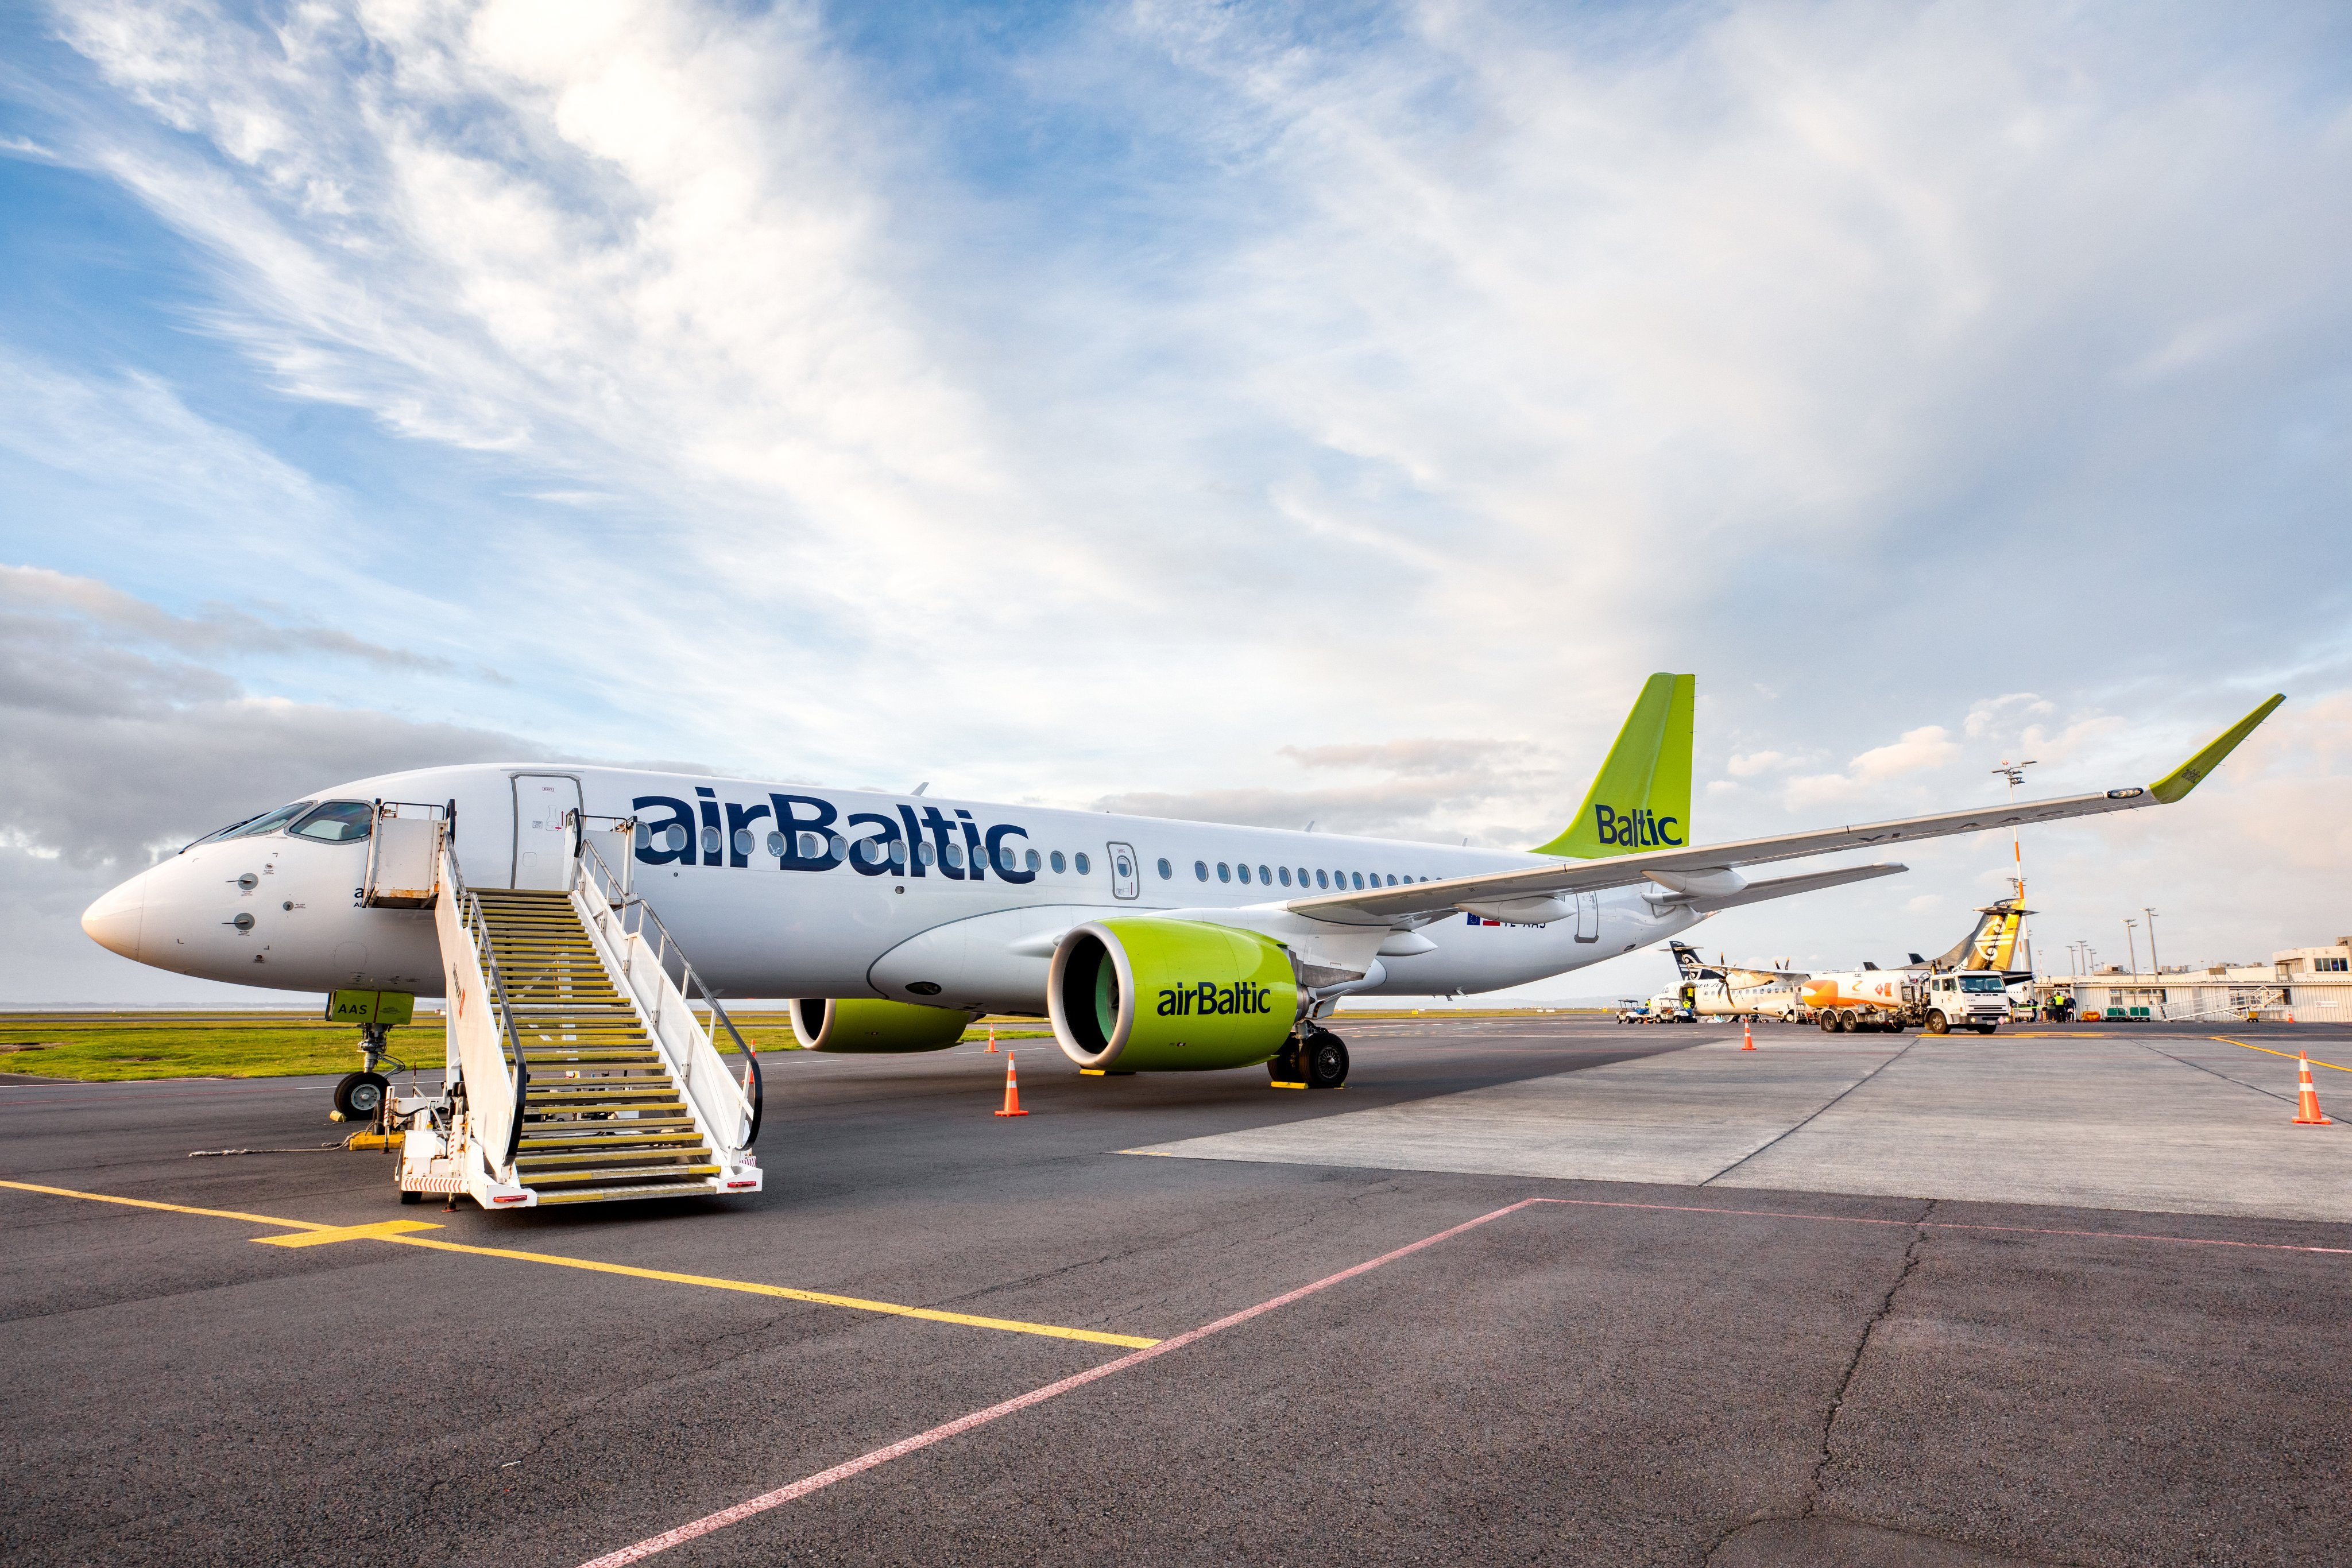 Photo by airBaltic